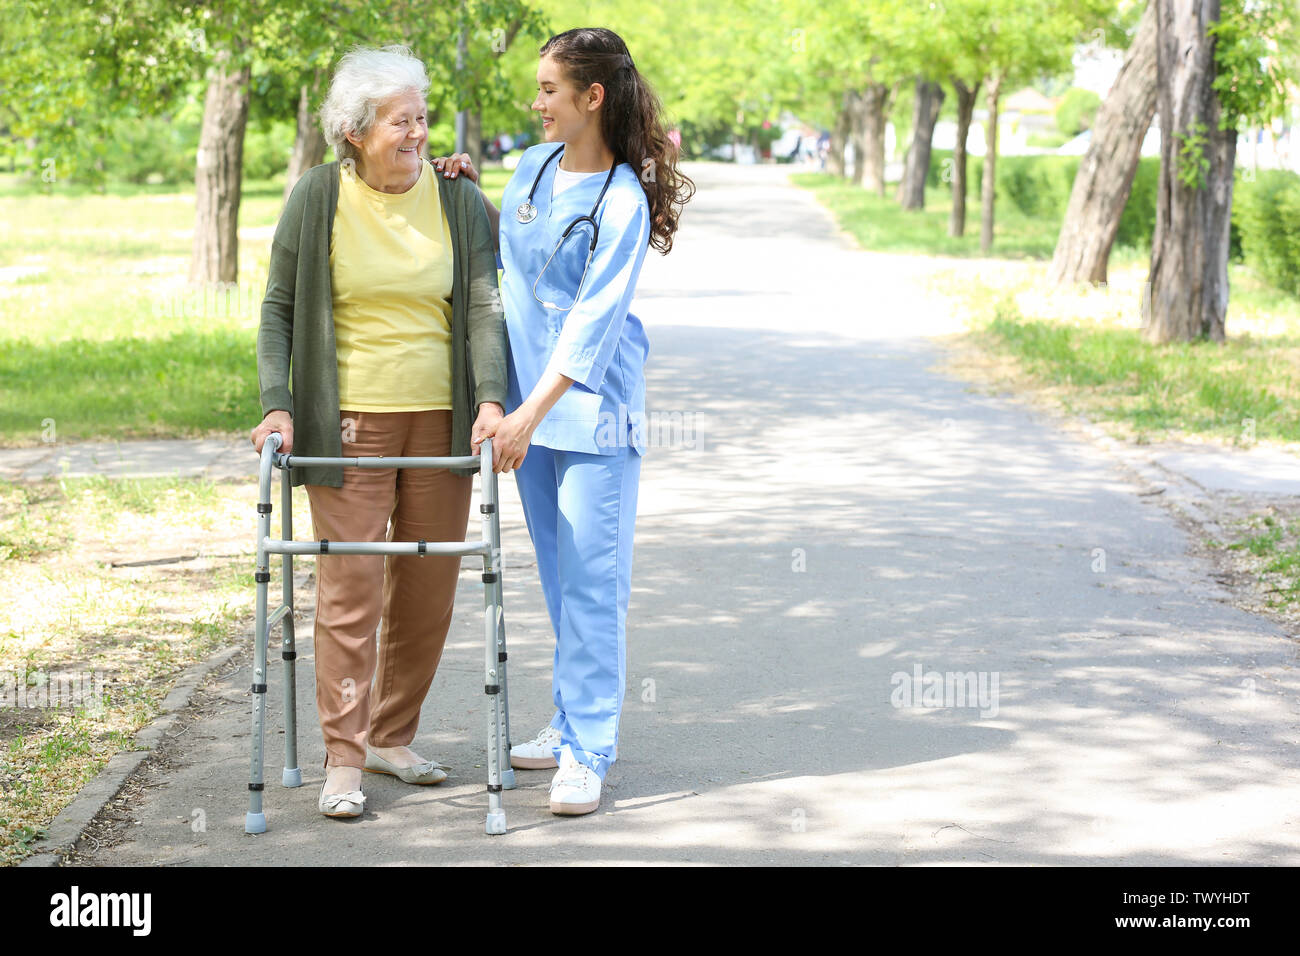 Caregiver walking with senior woman in park - Stock Image